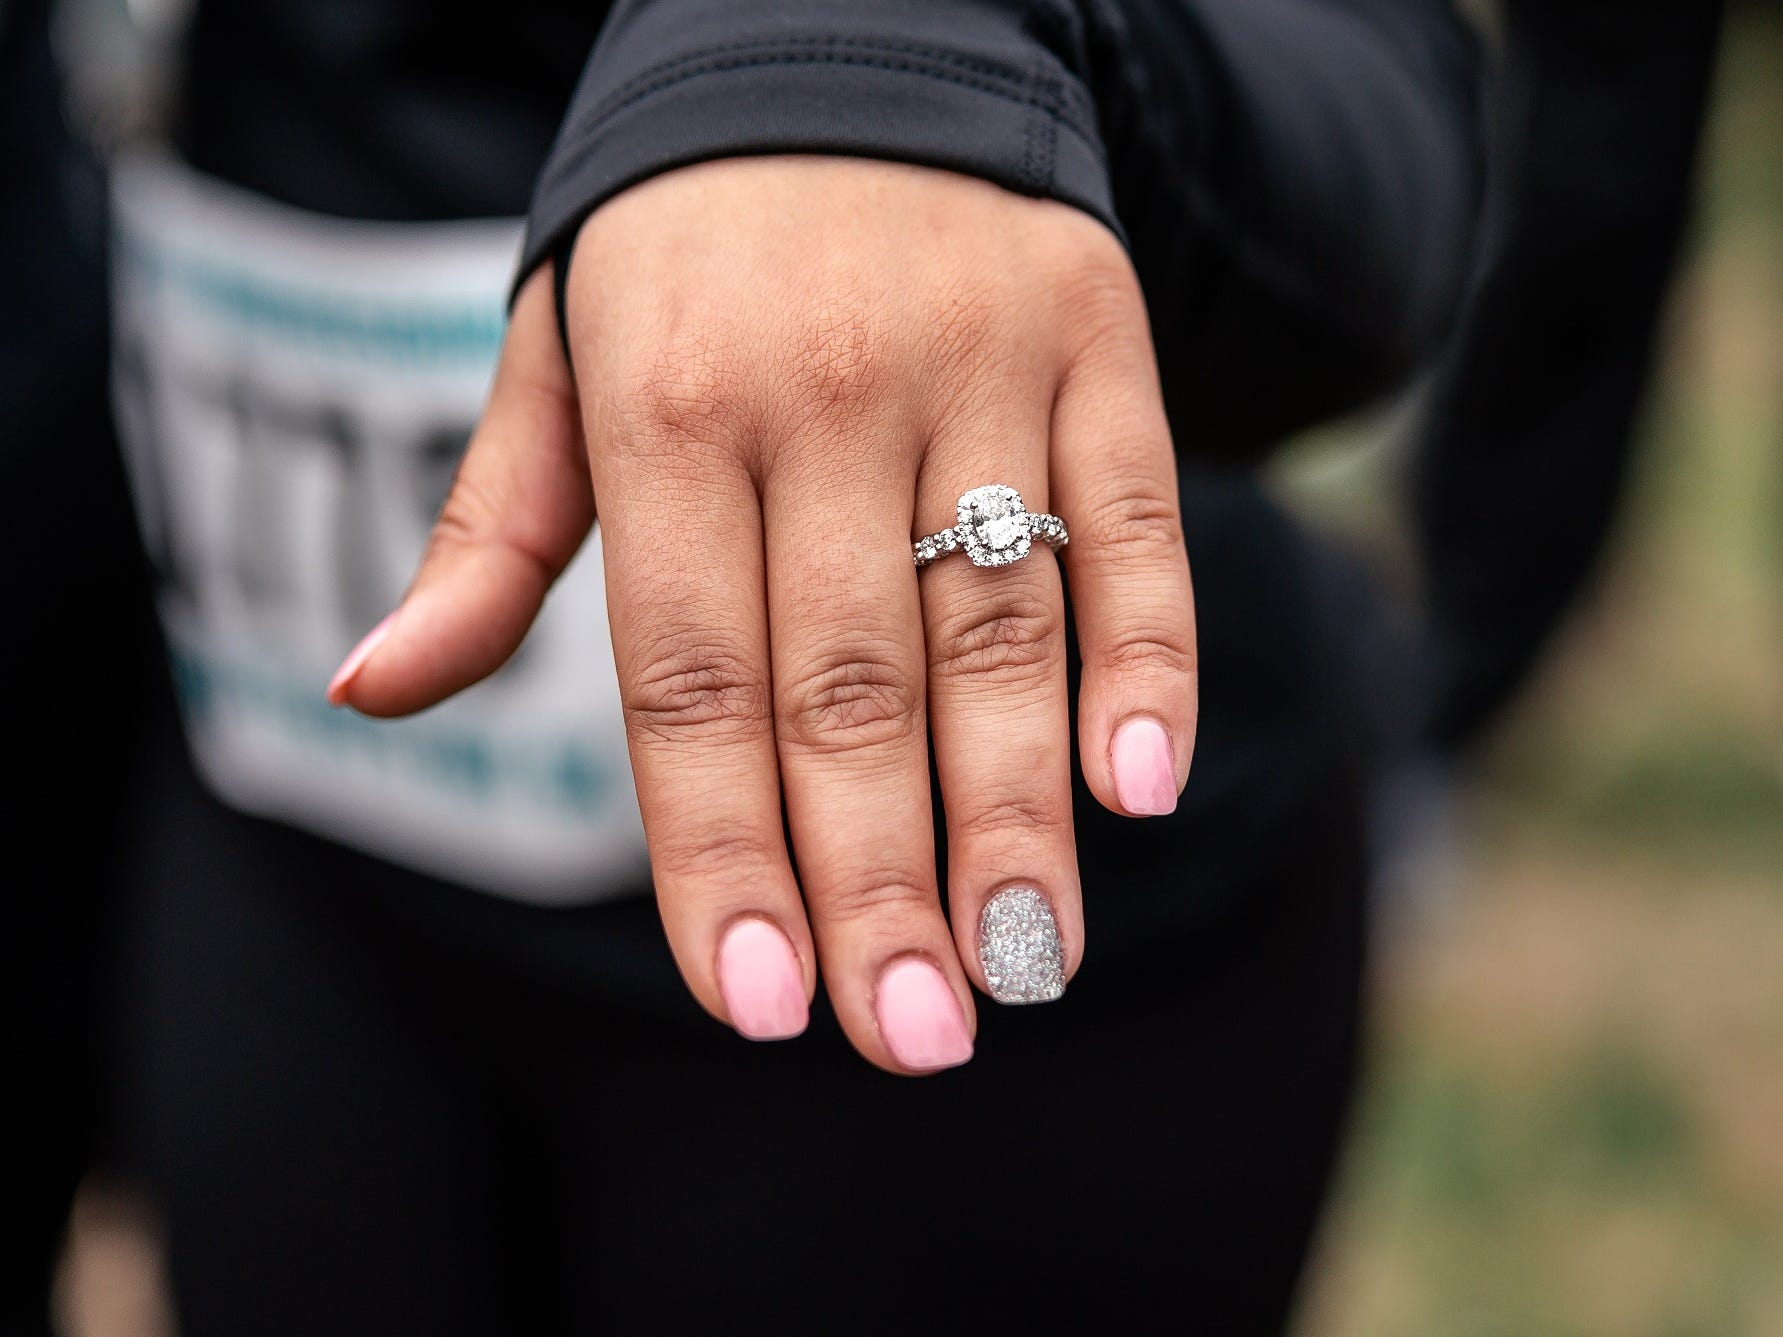 Tiffany Smith shows off her engagement ring after her boyfriend, Joshua Crutchfield, proposed to her following they crossed the finish line at the Murfreesboro New Year's Day 5K.